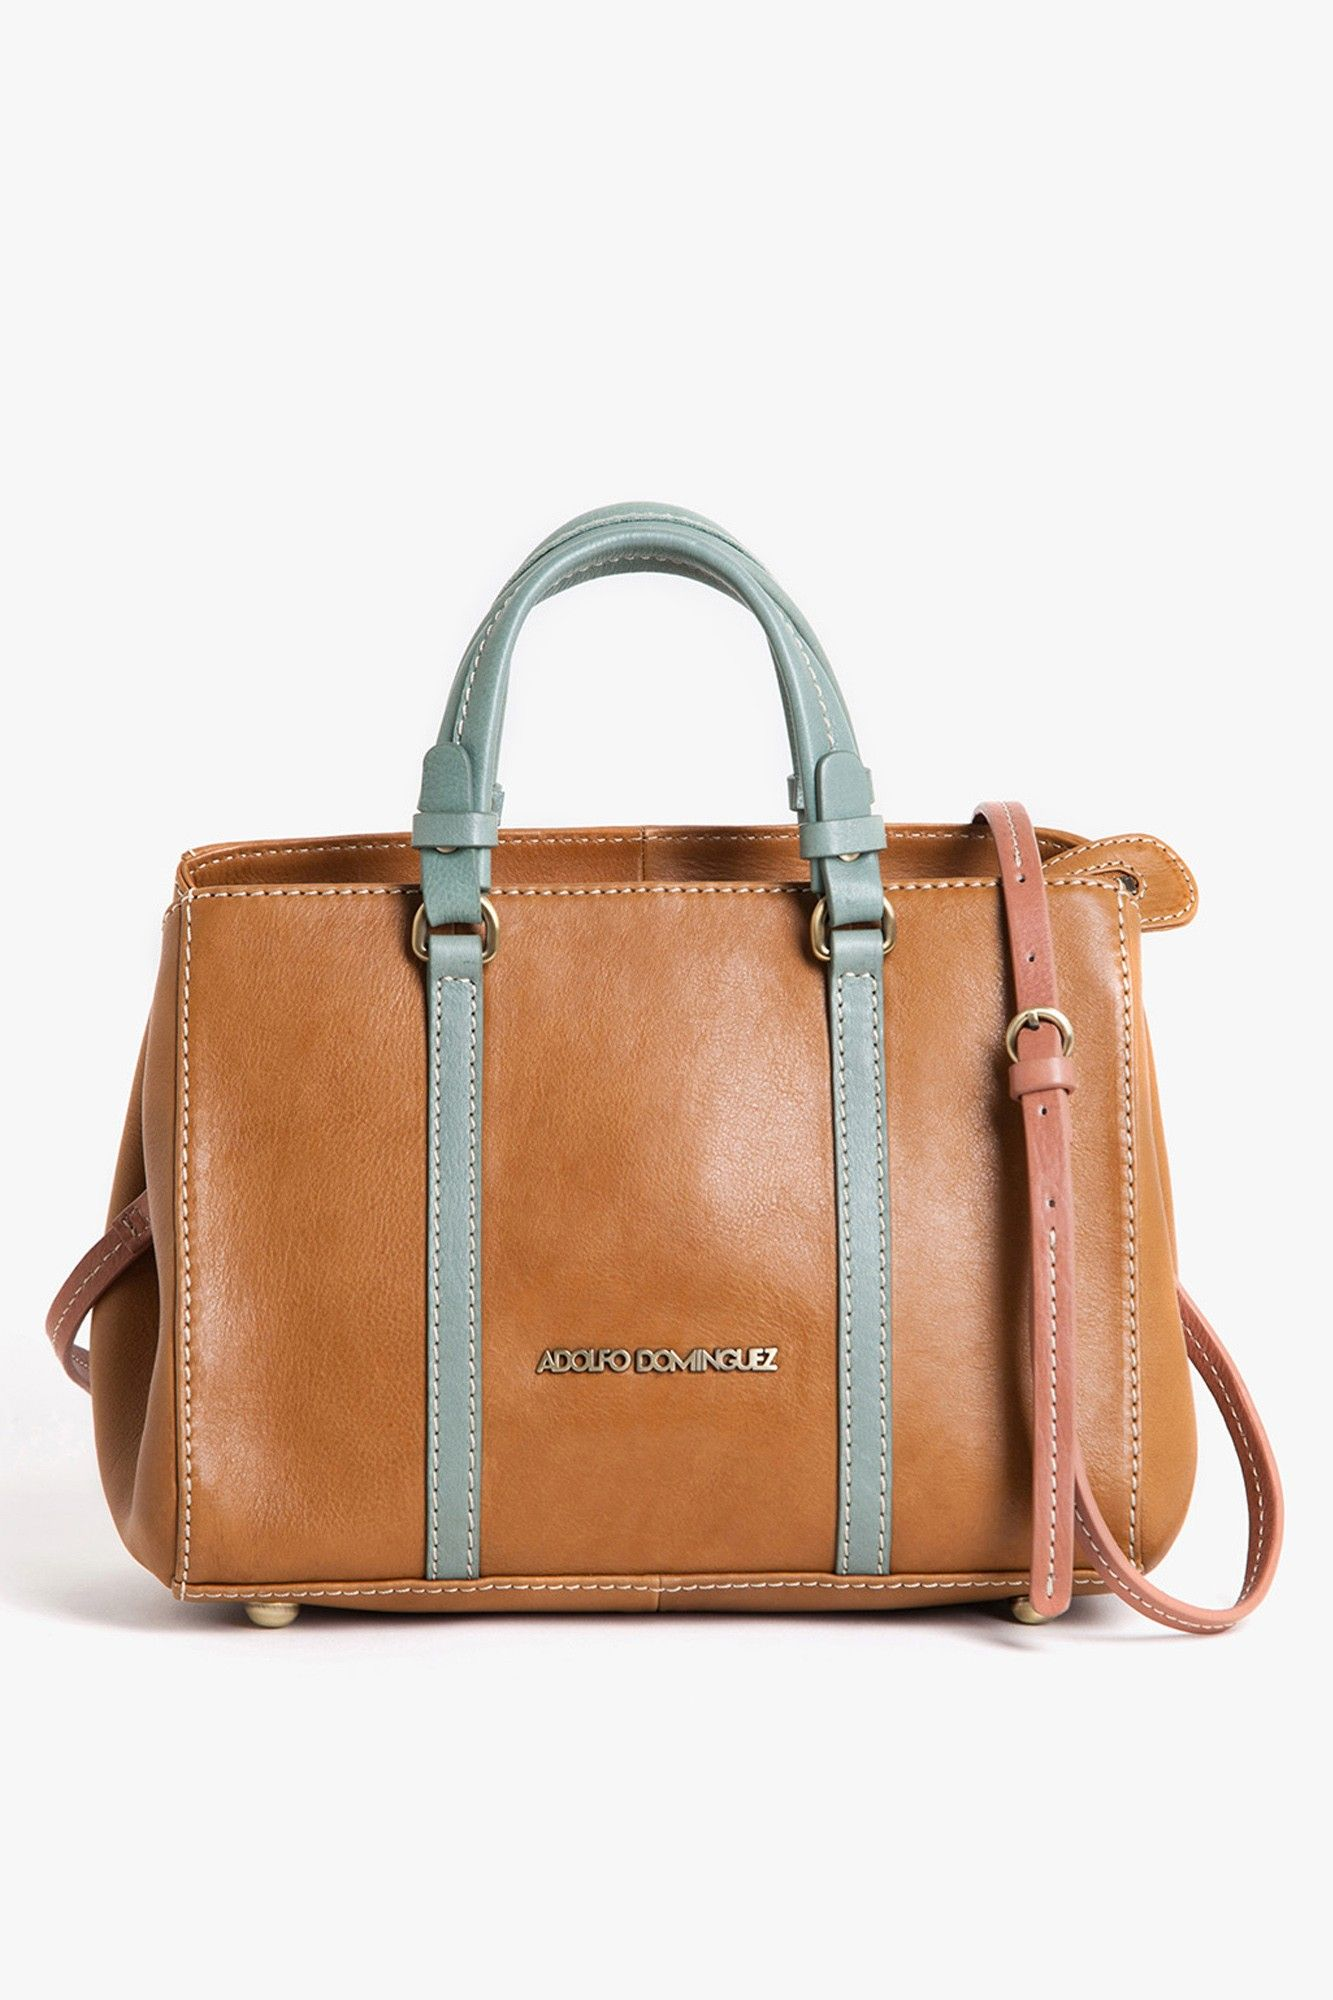 1c3aefd890fe Tulip Leather Lady Bag - Hand bags | Adolfo Dominguez | Cool ...